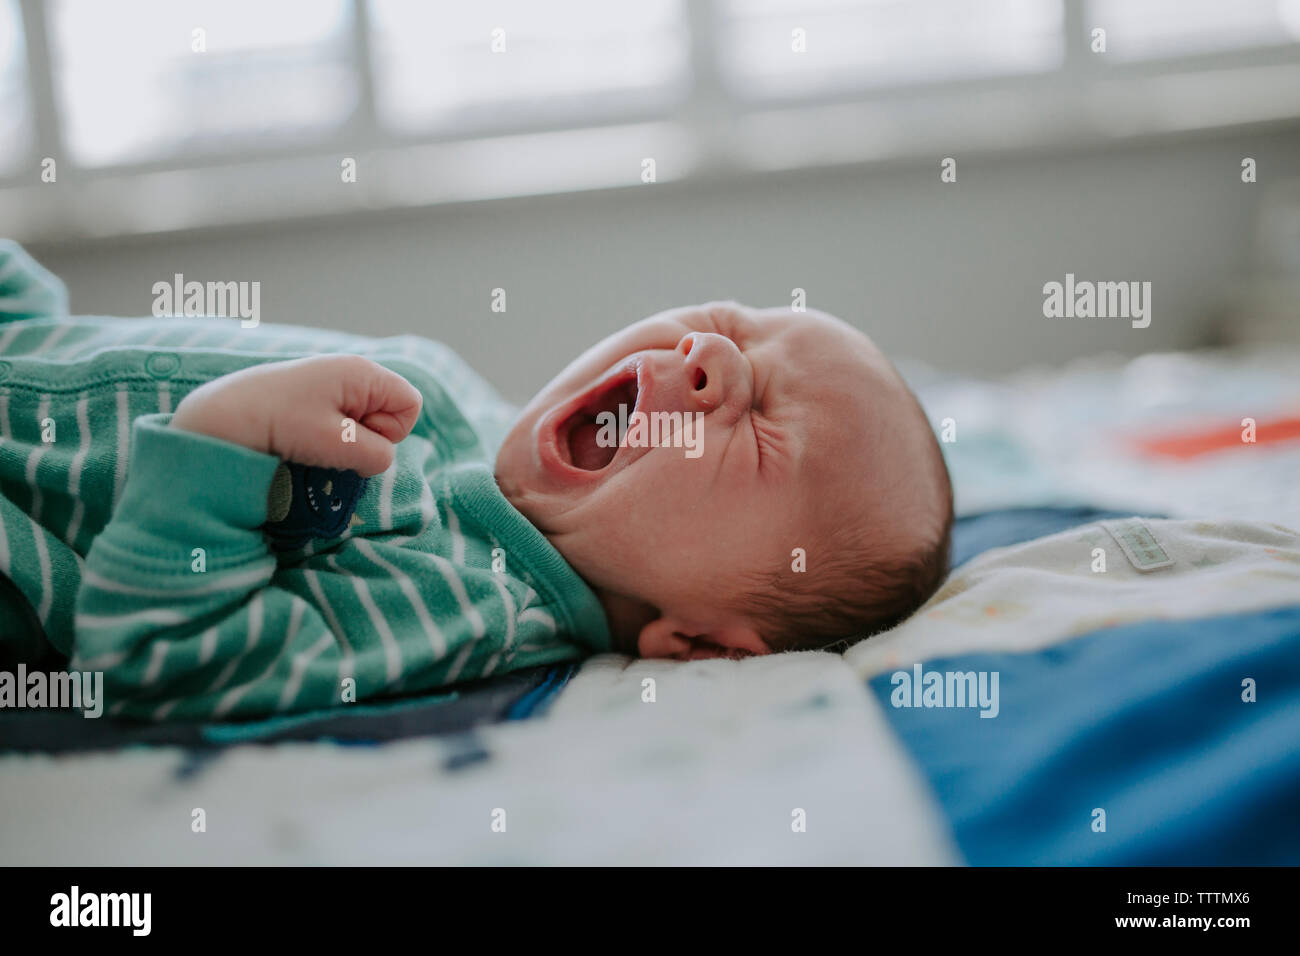 Close-up of baby boy yawning while sleeping on bed at home - Stock Image